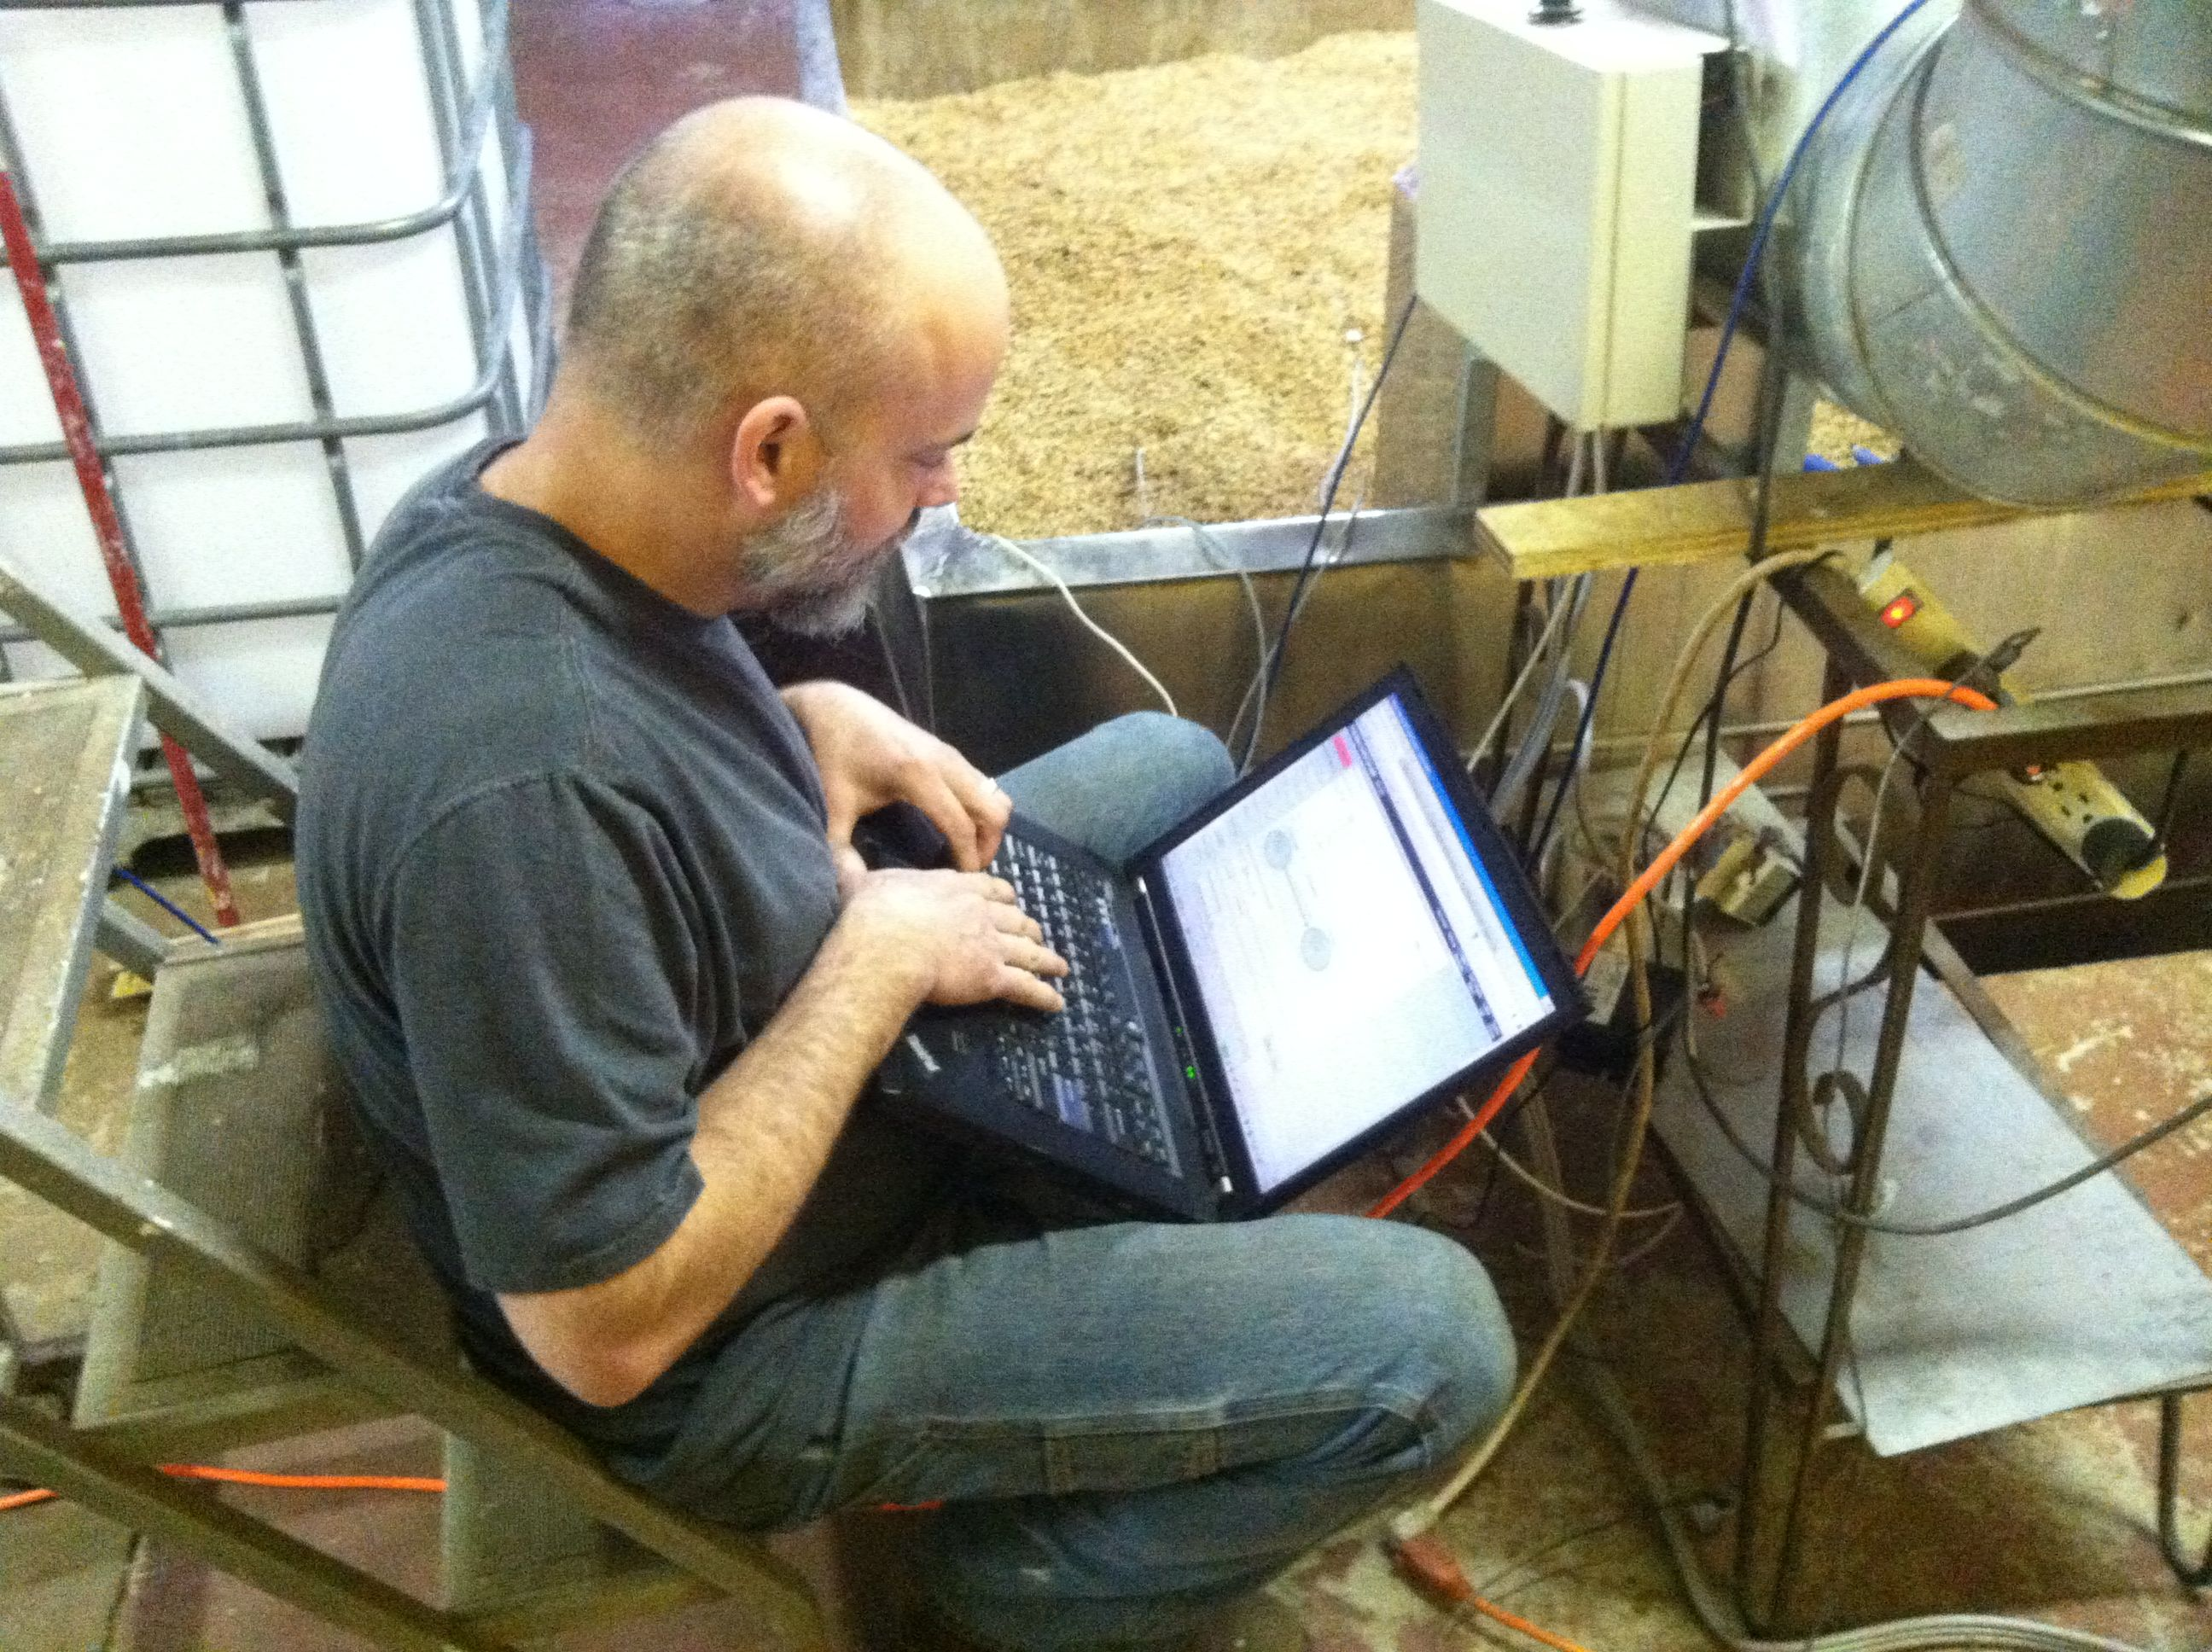 The Maltster from FarmHouse Malt programming the